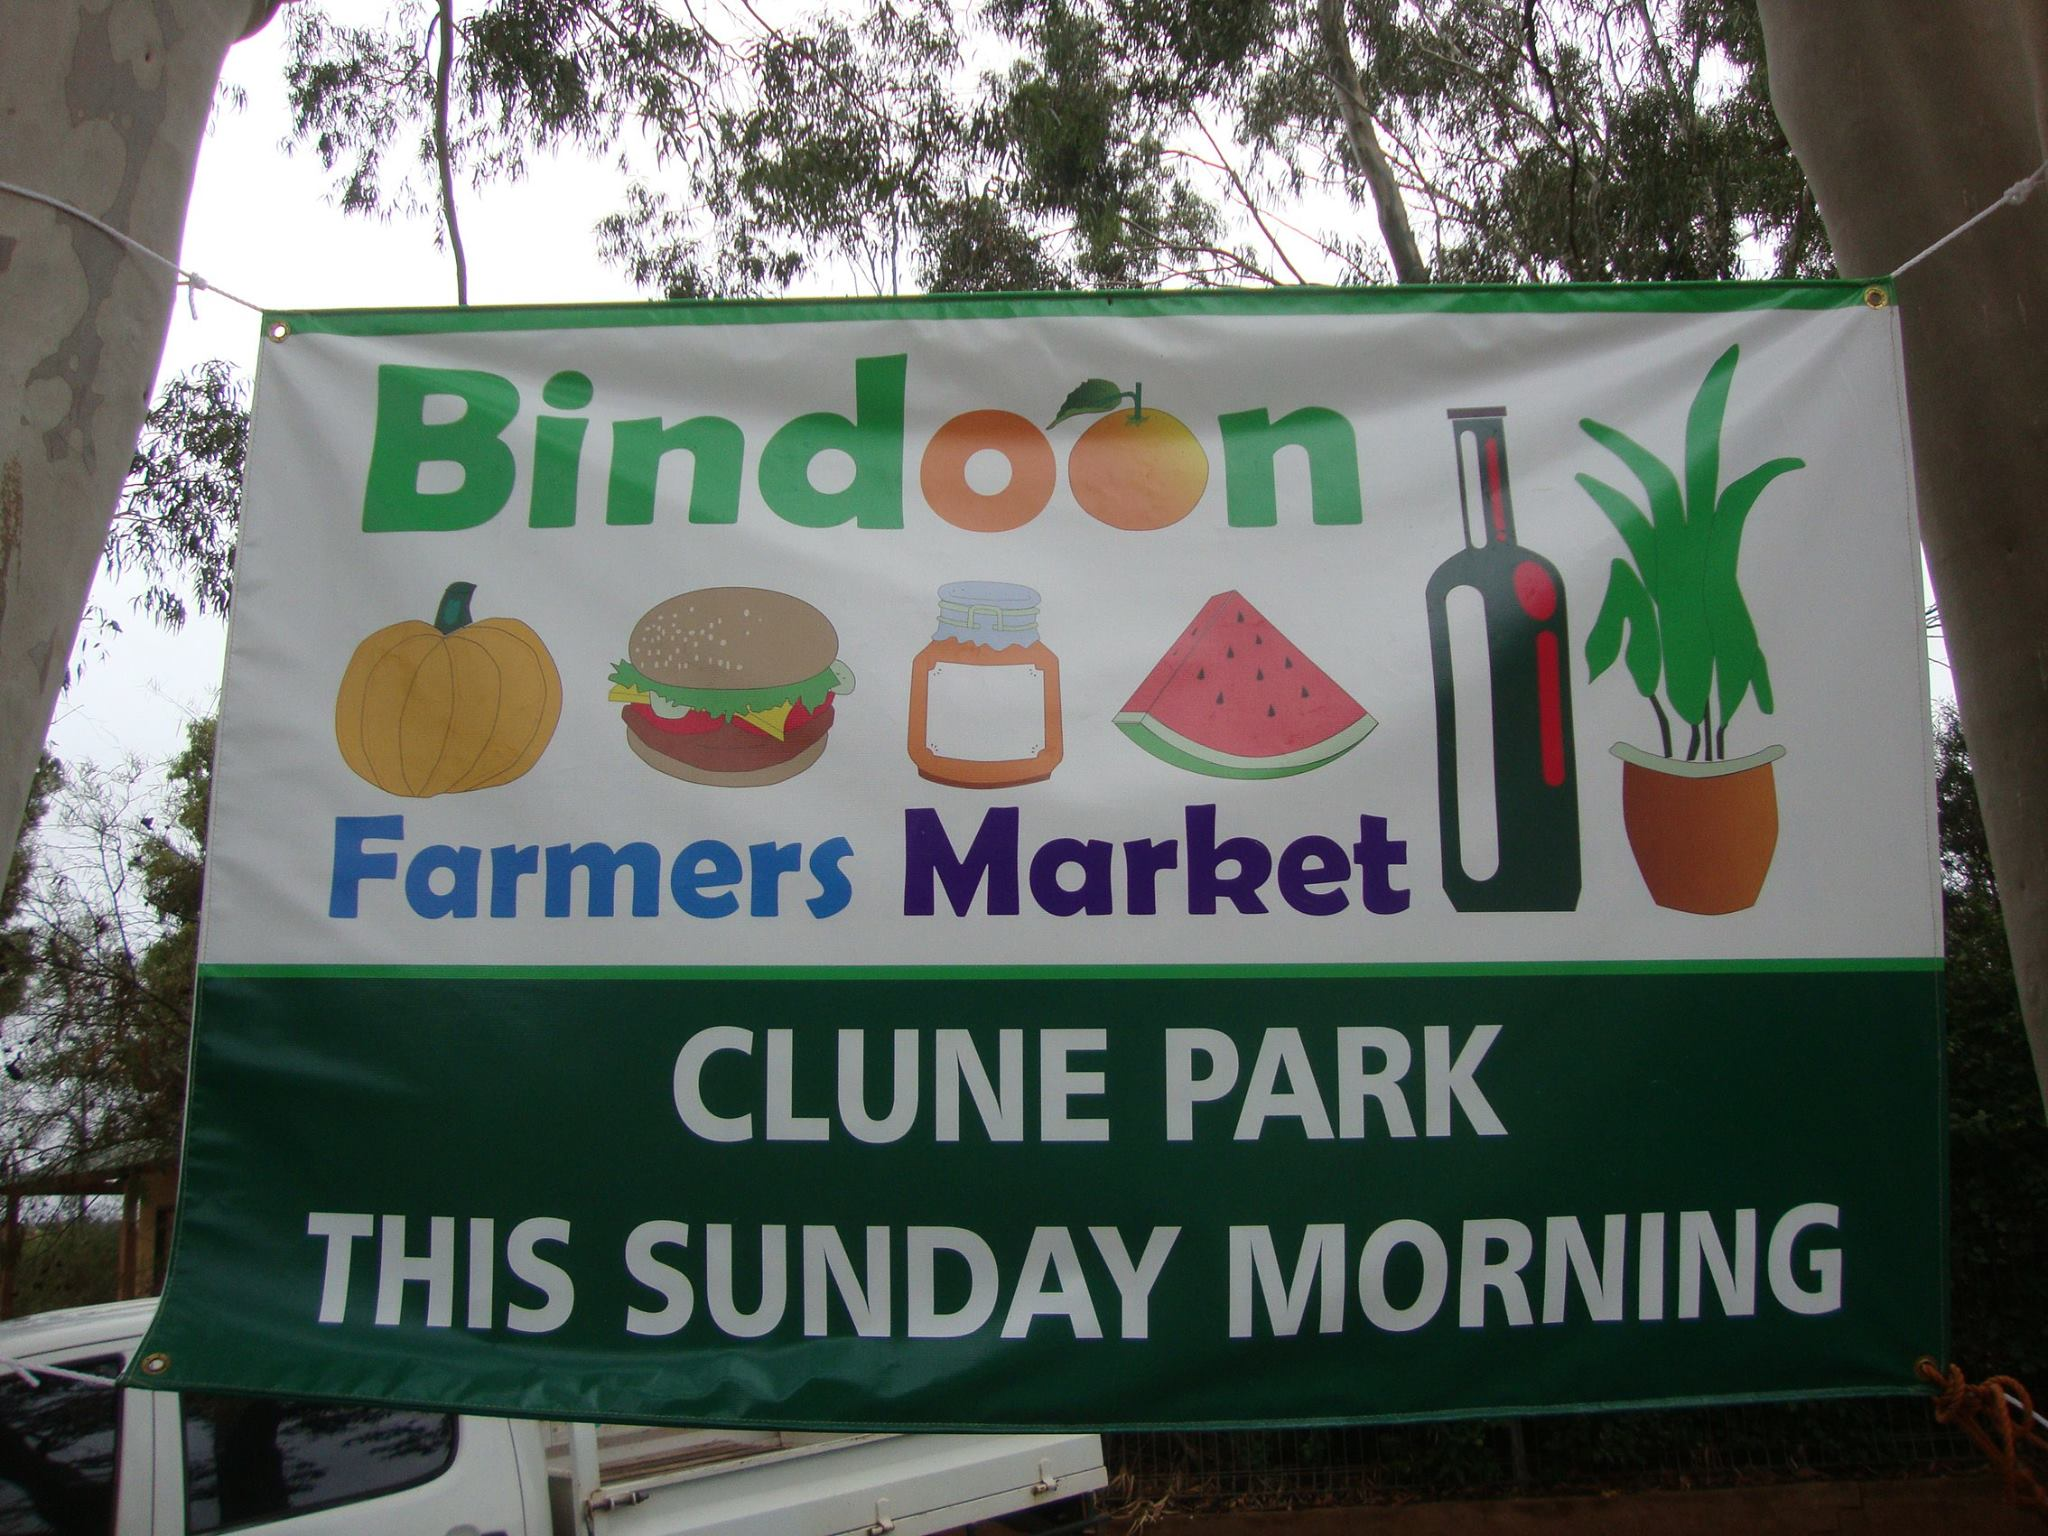 Bindoon Farmers Market on this Sunday | Community News Group